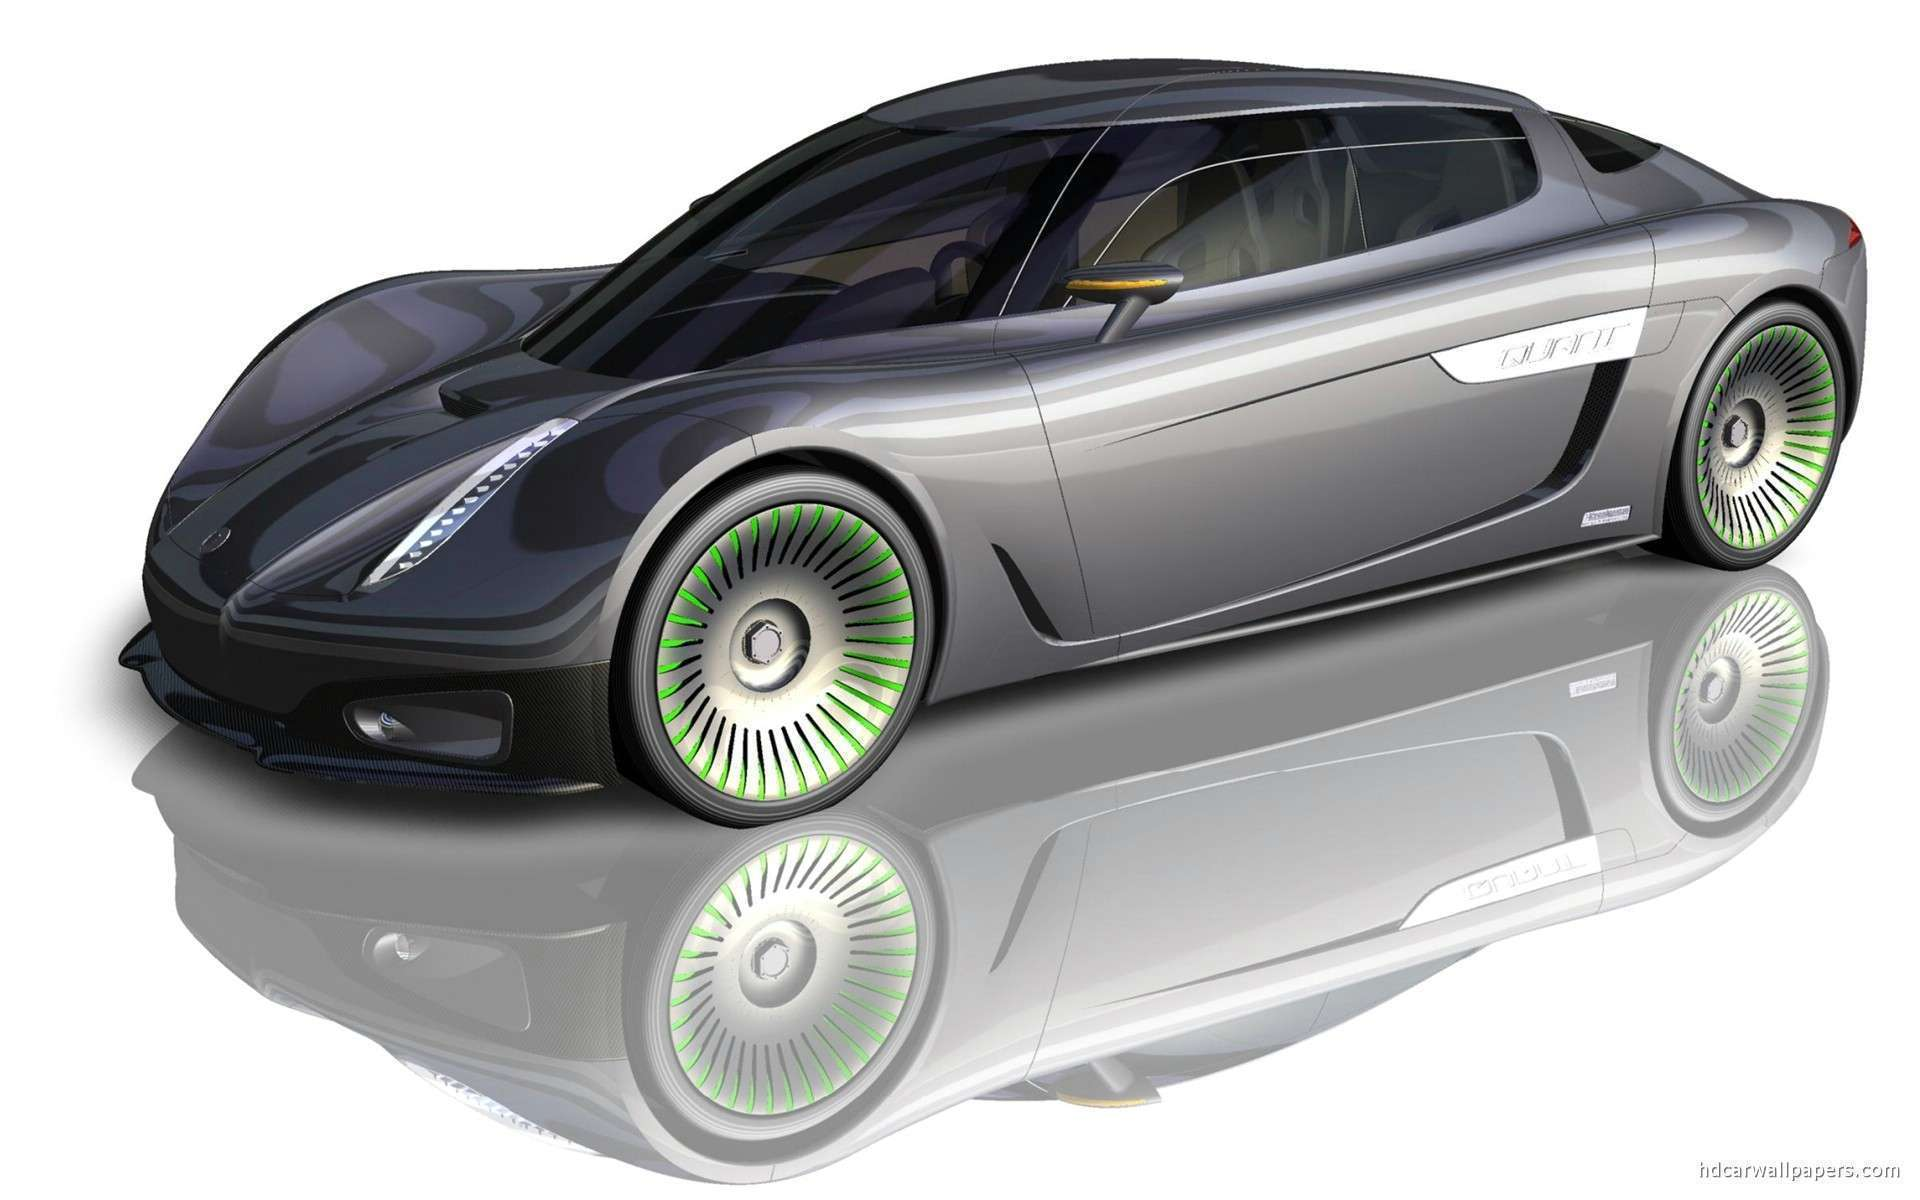 2009 Koenigsegg Quant Concept Hd Wallpapers